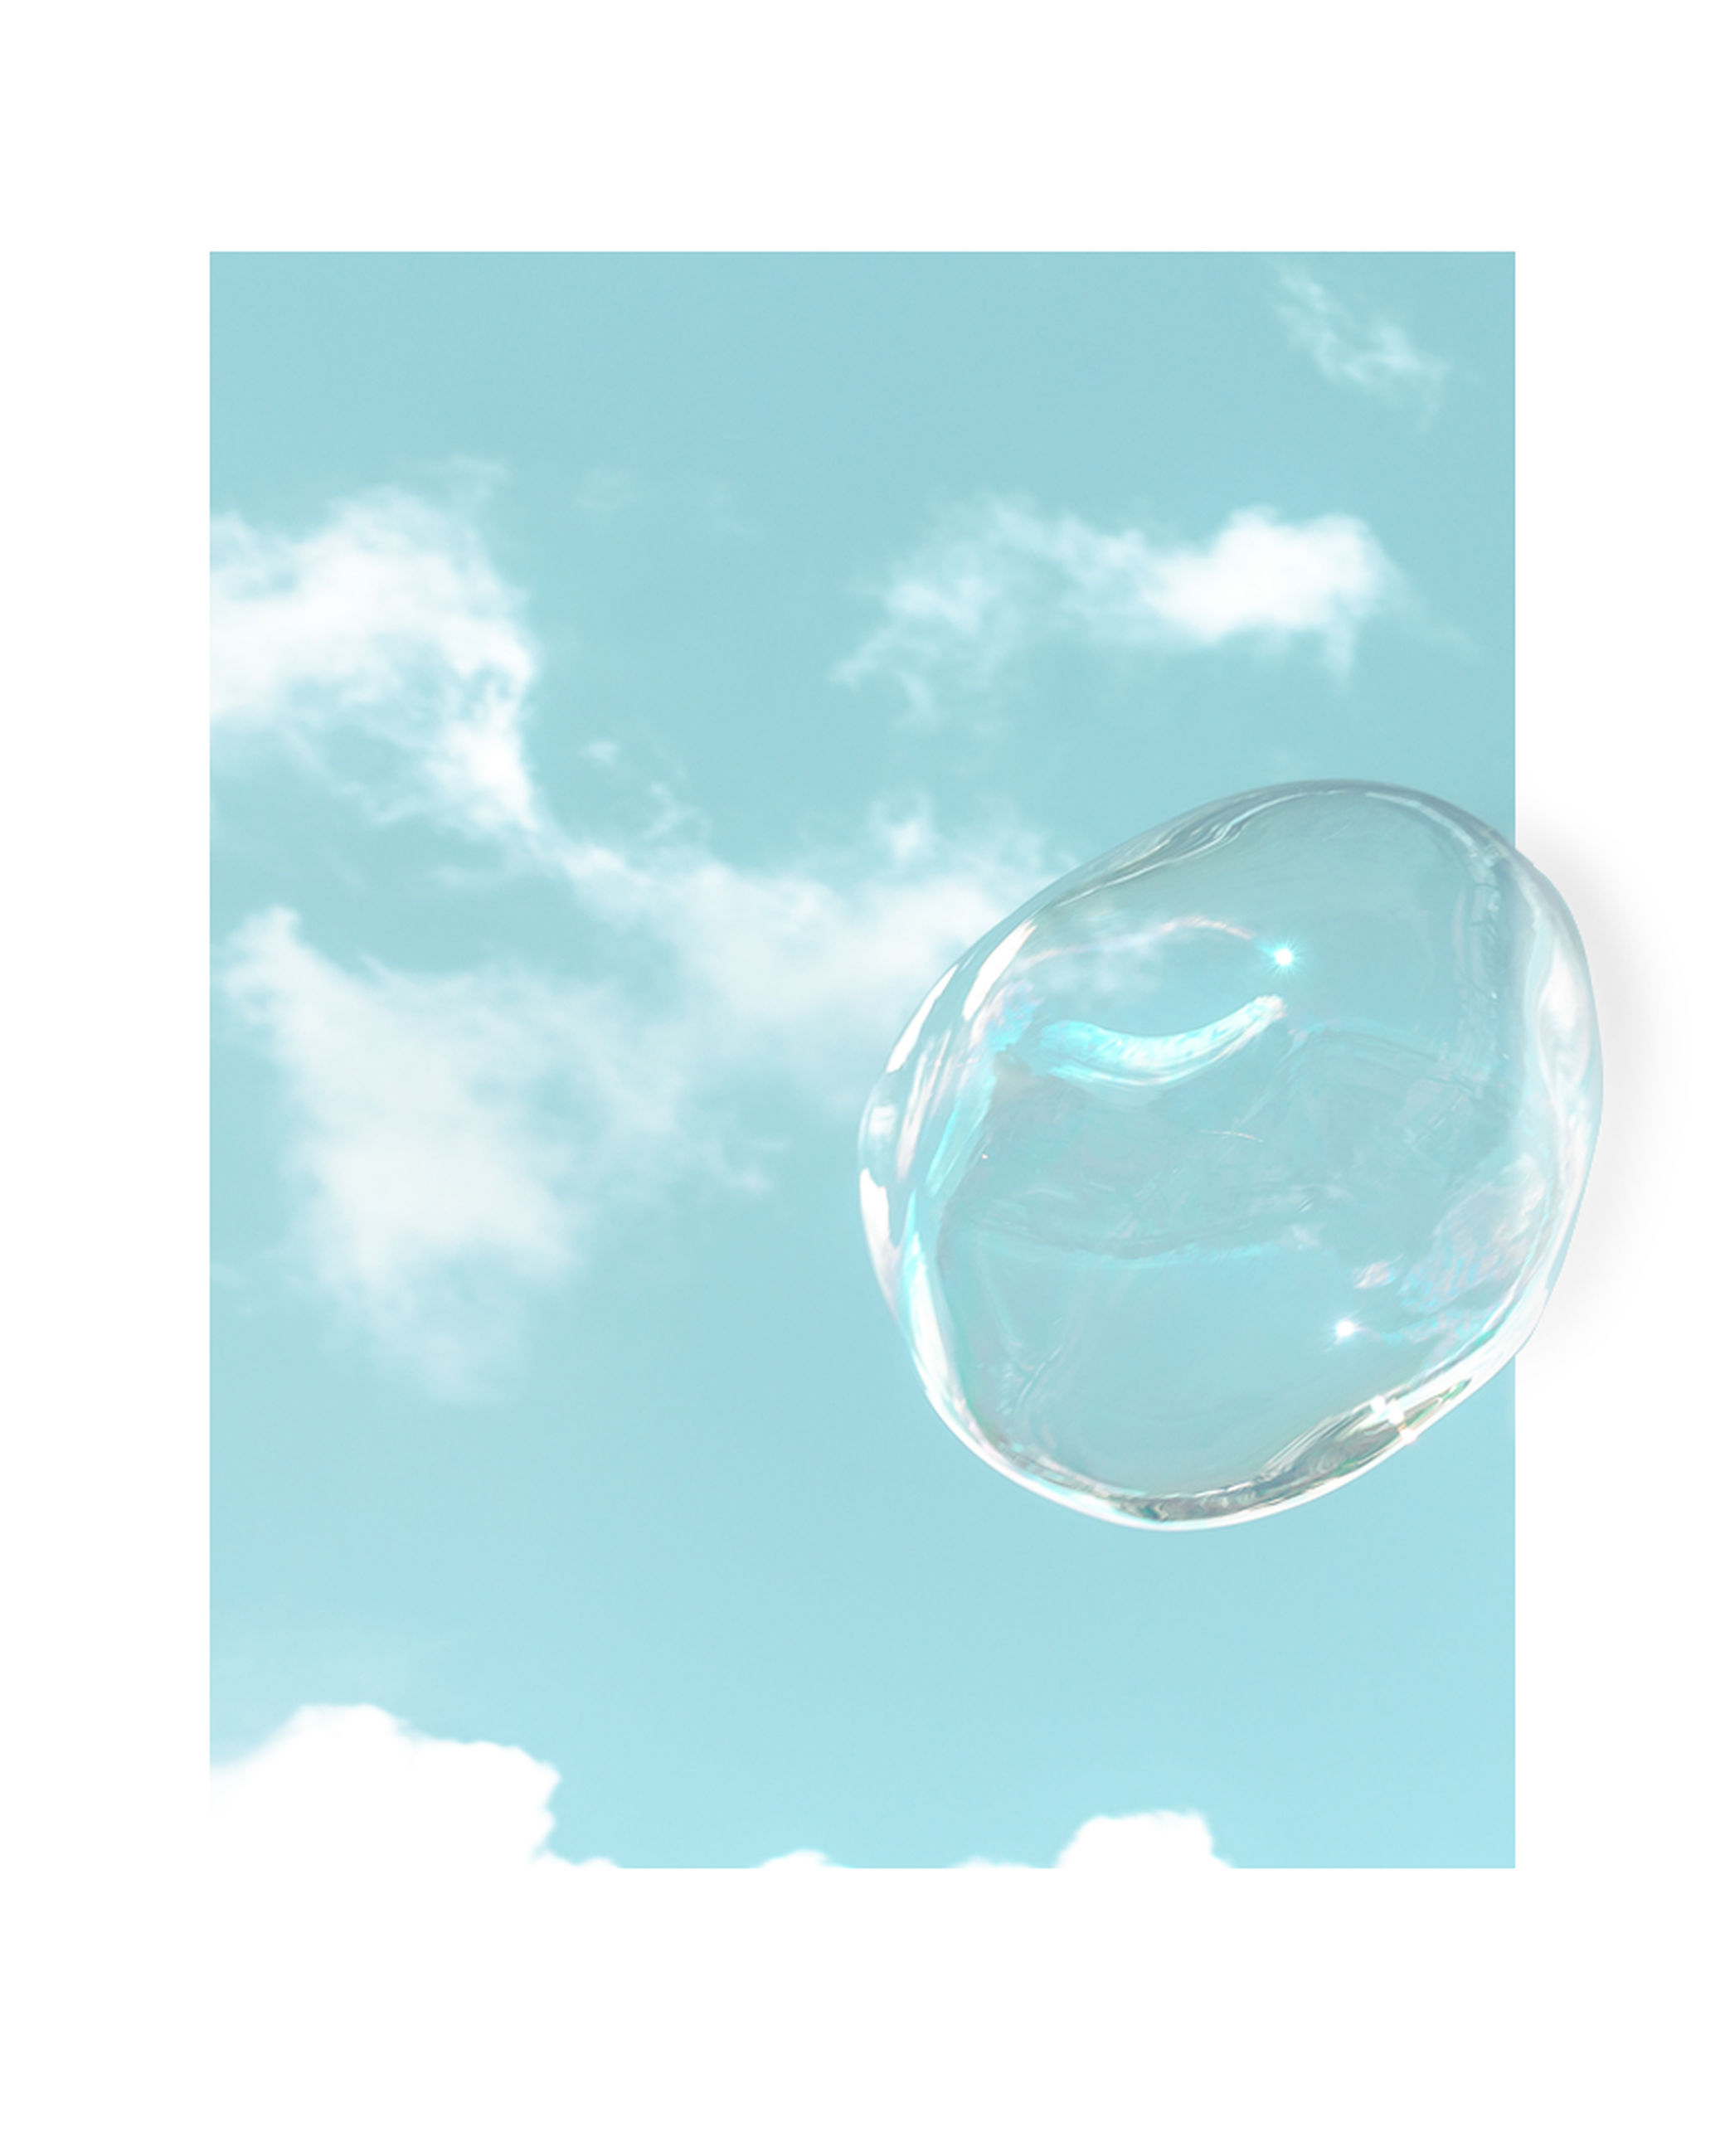 cloud - sky, sky, nature, transparent, mid-air, blue, vulnerability, no people, fragility, low angle view, bubble, day, outdoors, shape, beauty in nature, geometric shape, sunlight, soap sud, studio shot, close-up, digital composite